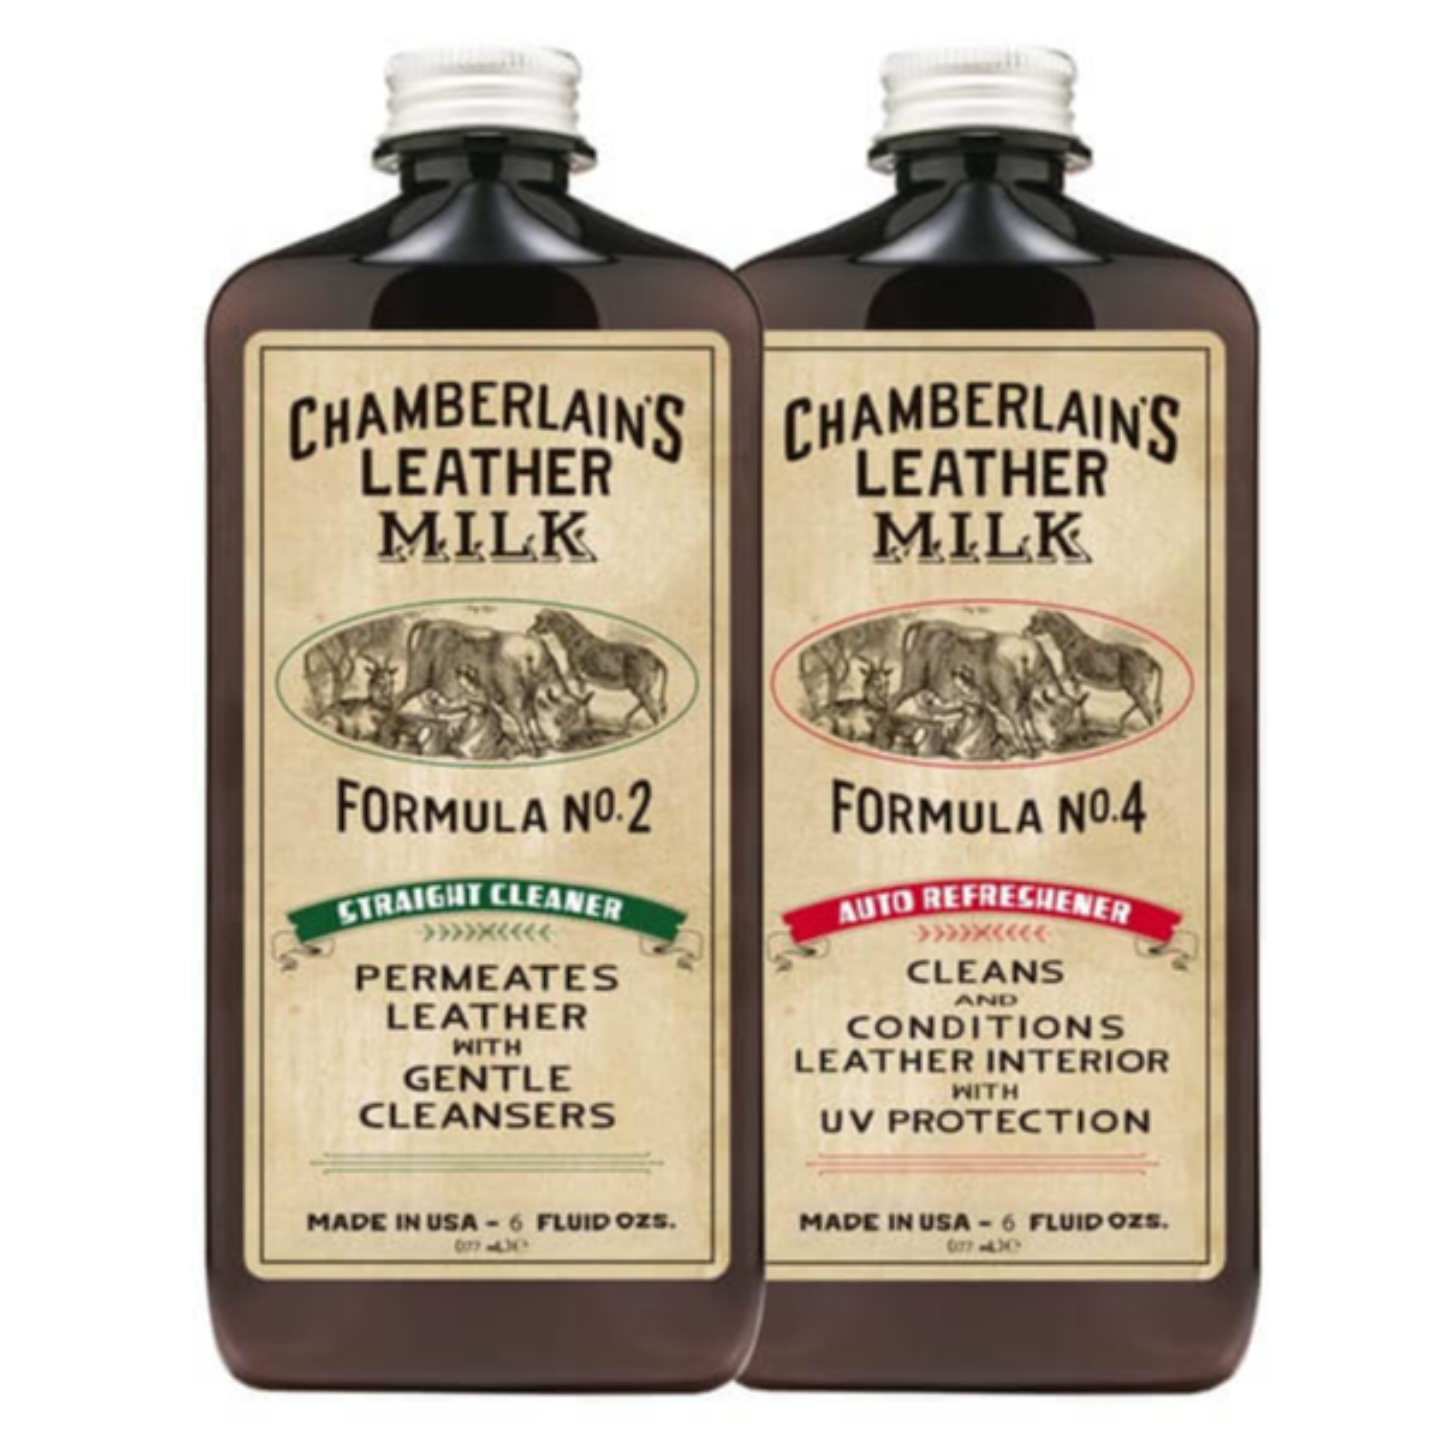 CHAMBERLAINS LEATHER MILK CLEAN & REFRESH AUTO LEATHER INTERIOR NO. 2 & NO. 4 - 6 oz